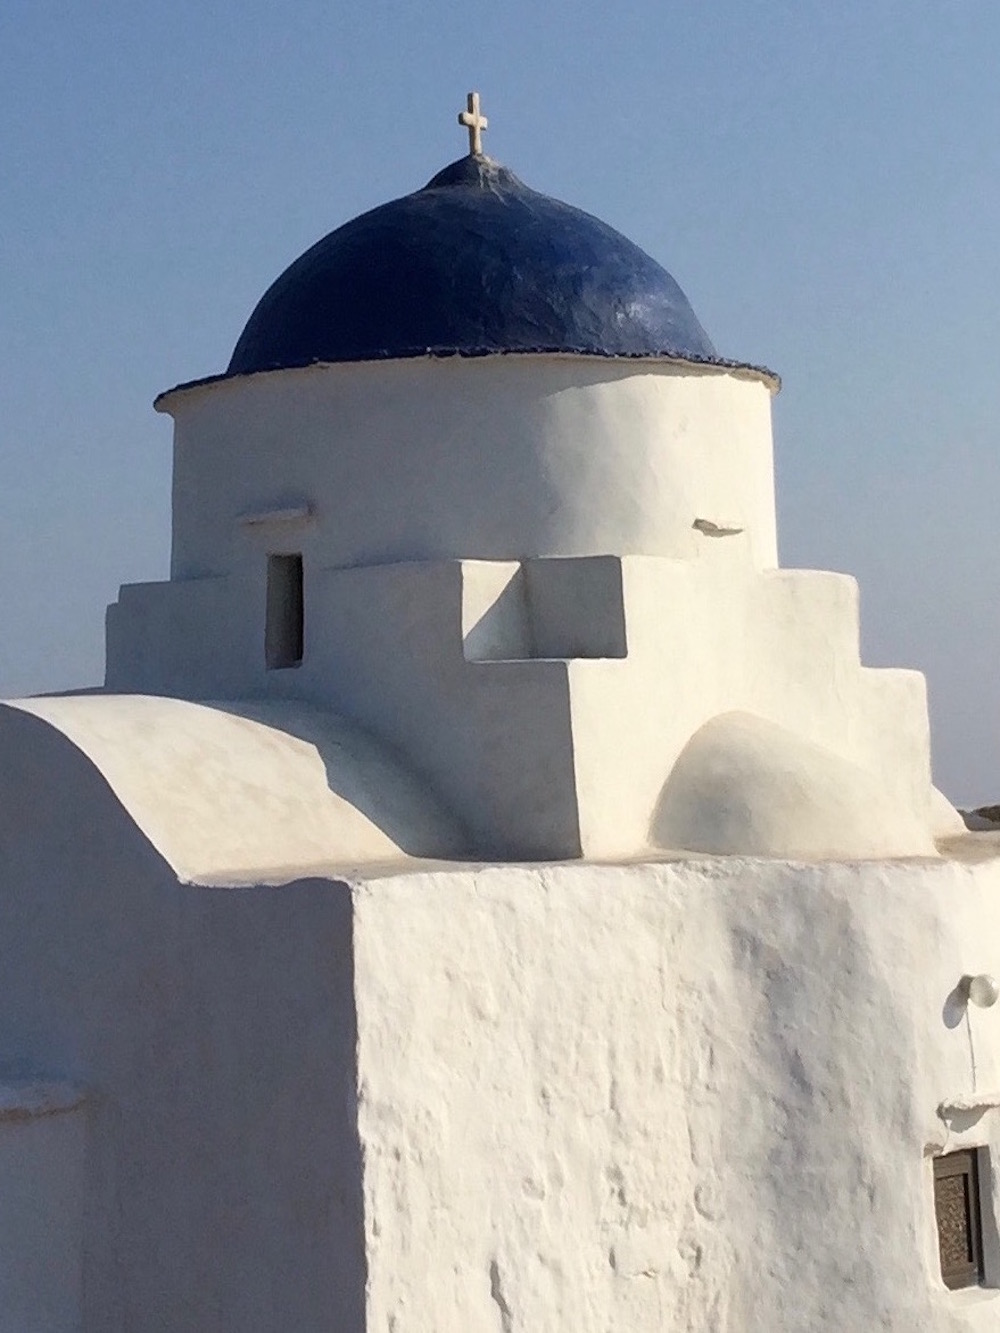 Grèce, Cyclades, visiter